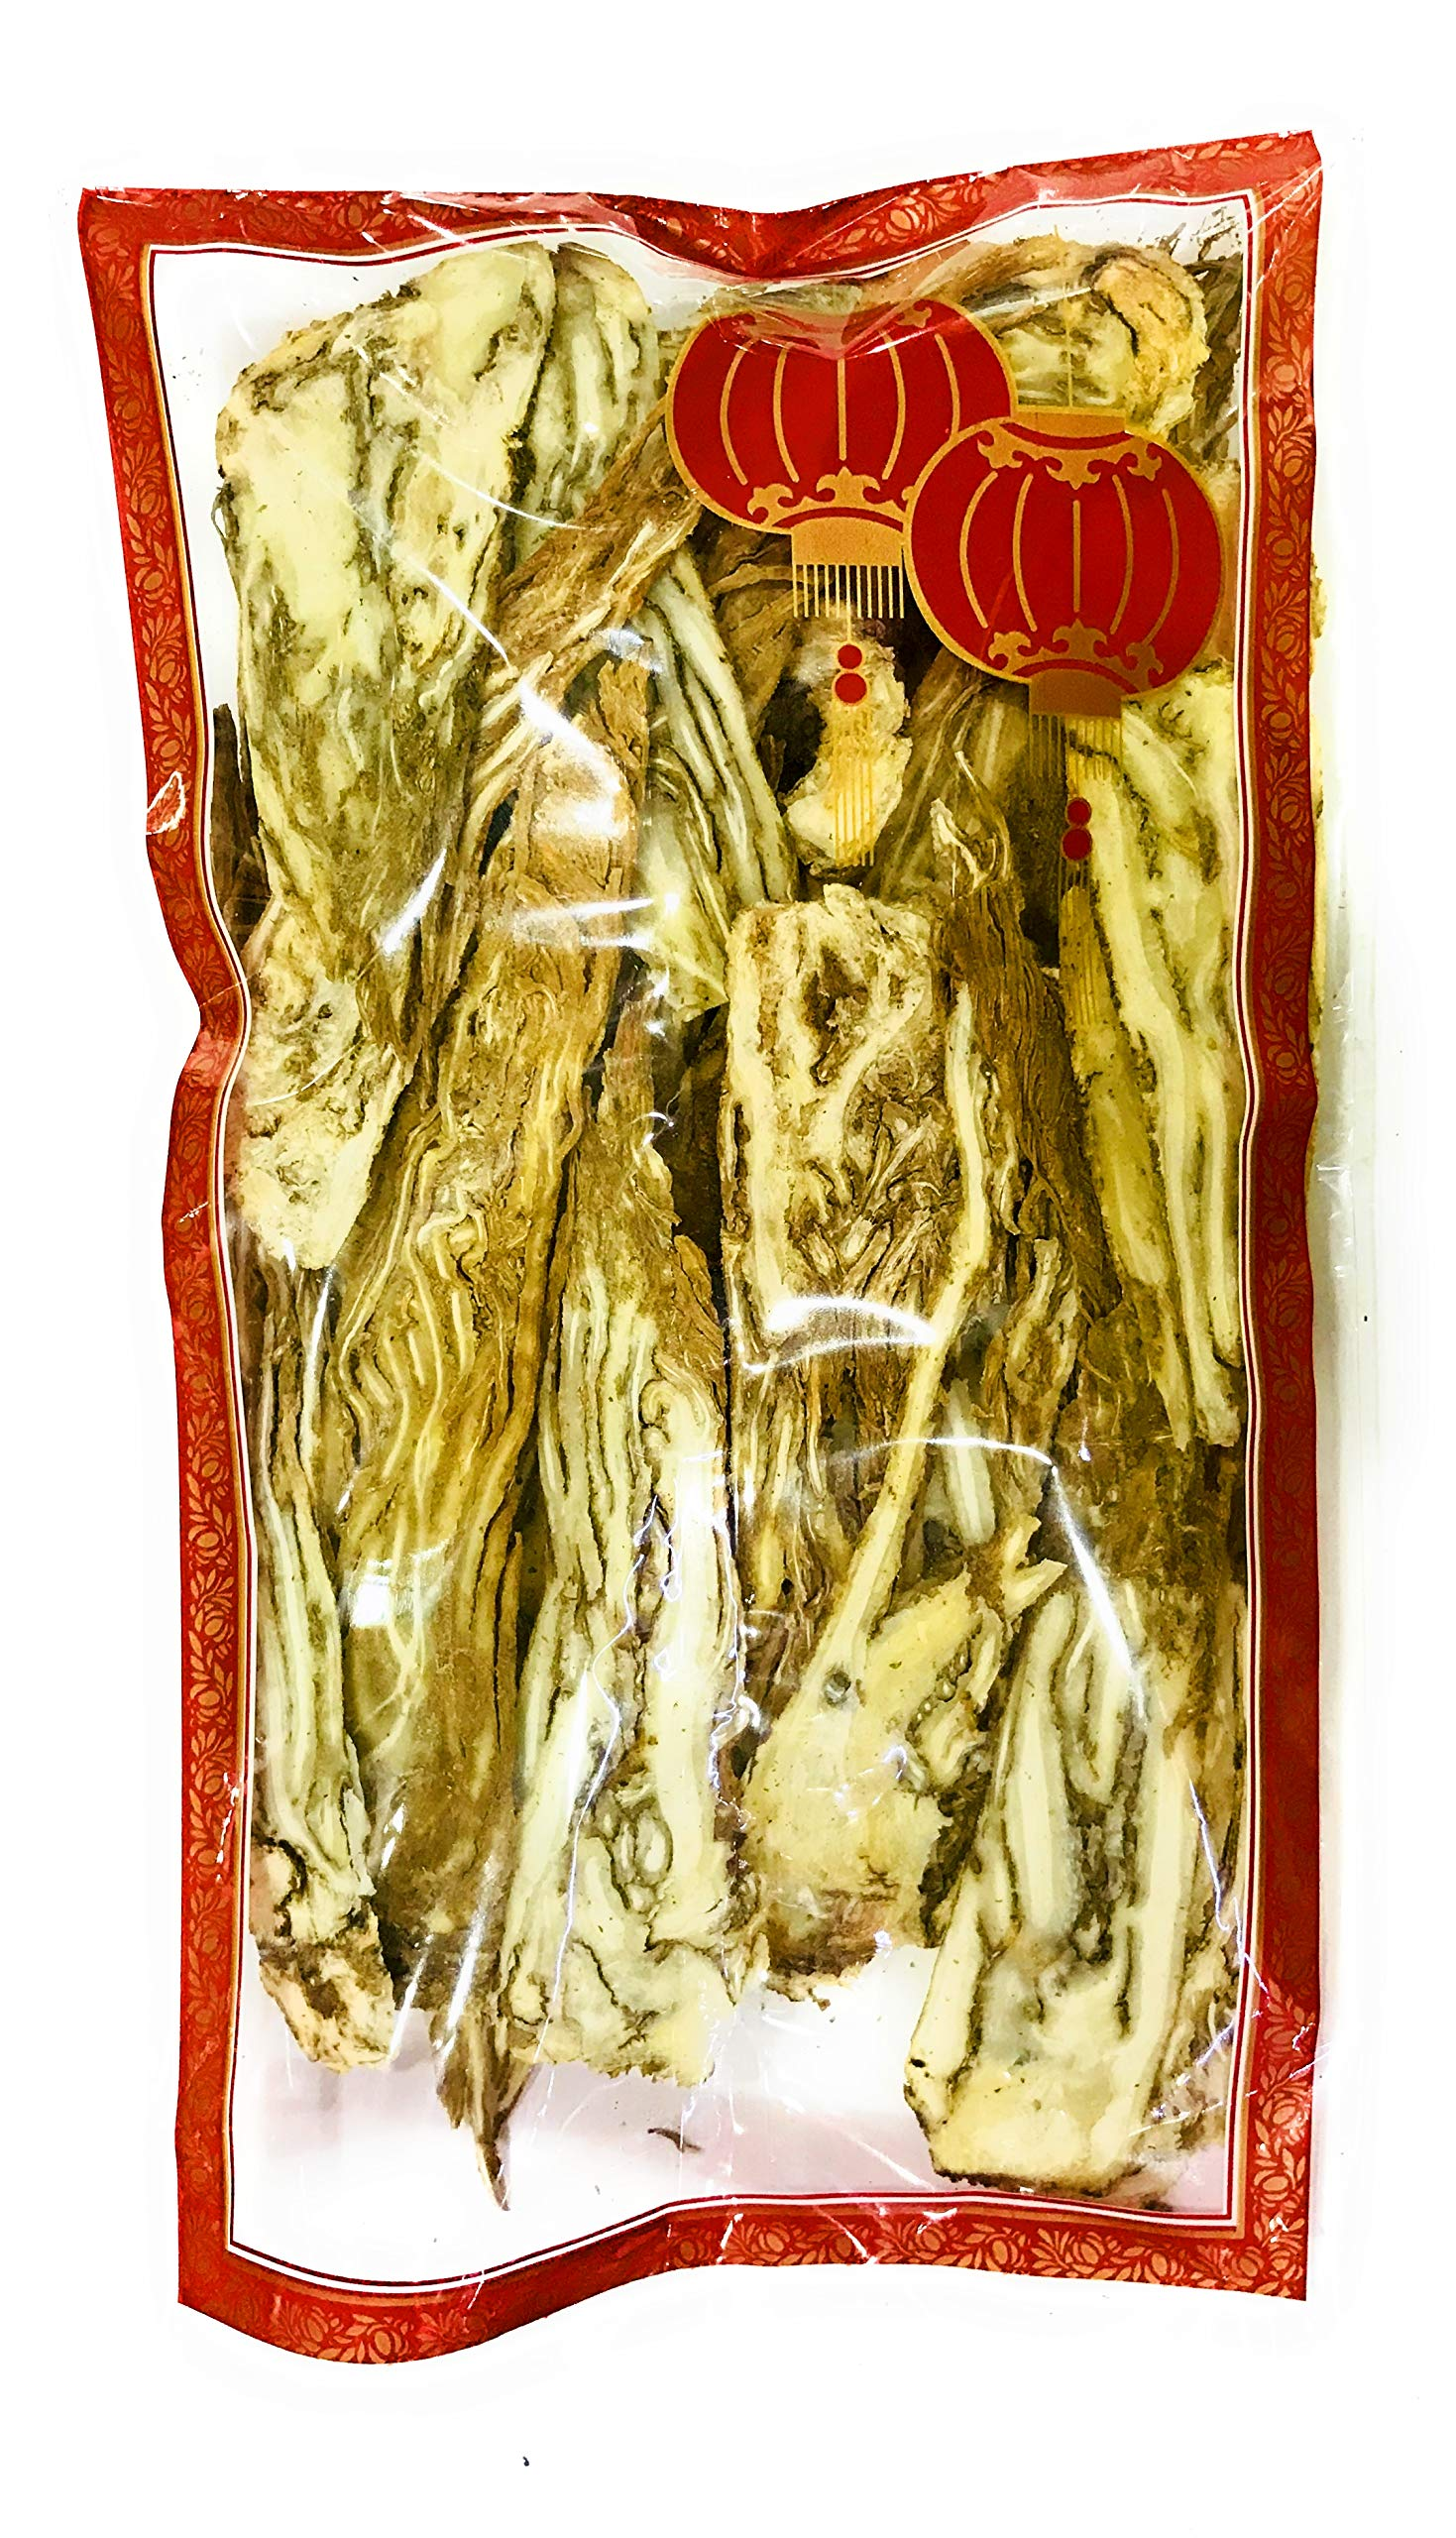 Dried Angelica Sinensis (Dong Quai) Slices 當歸片 16oz